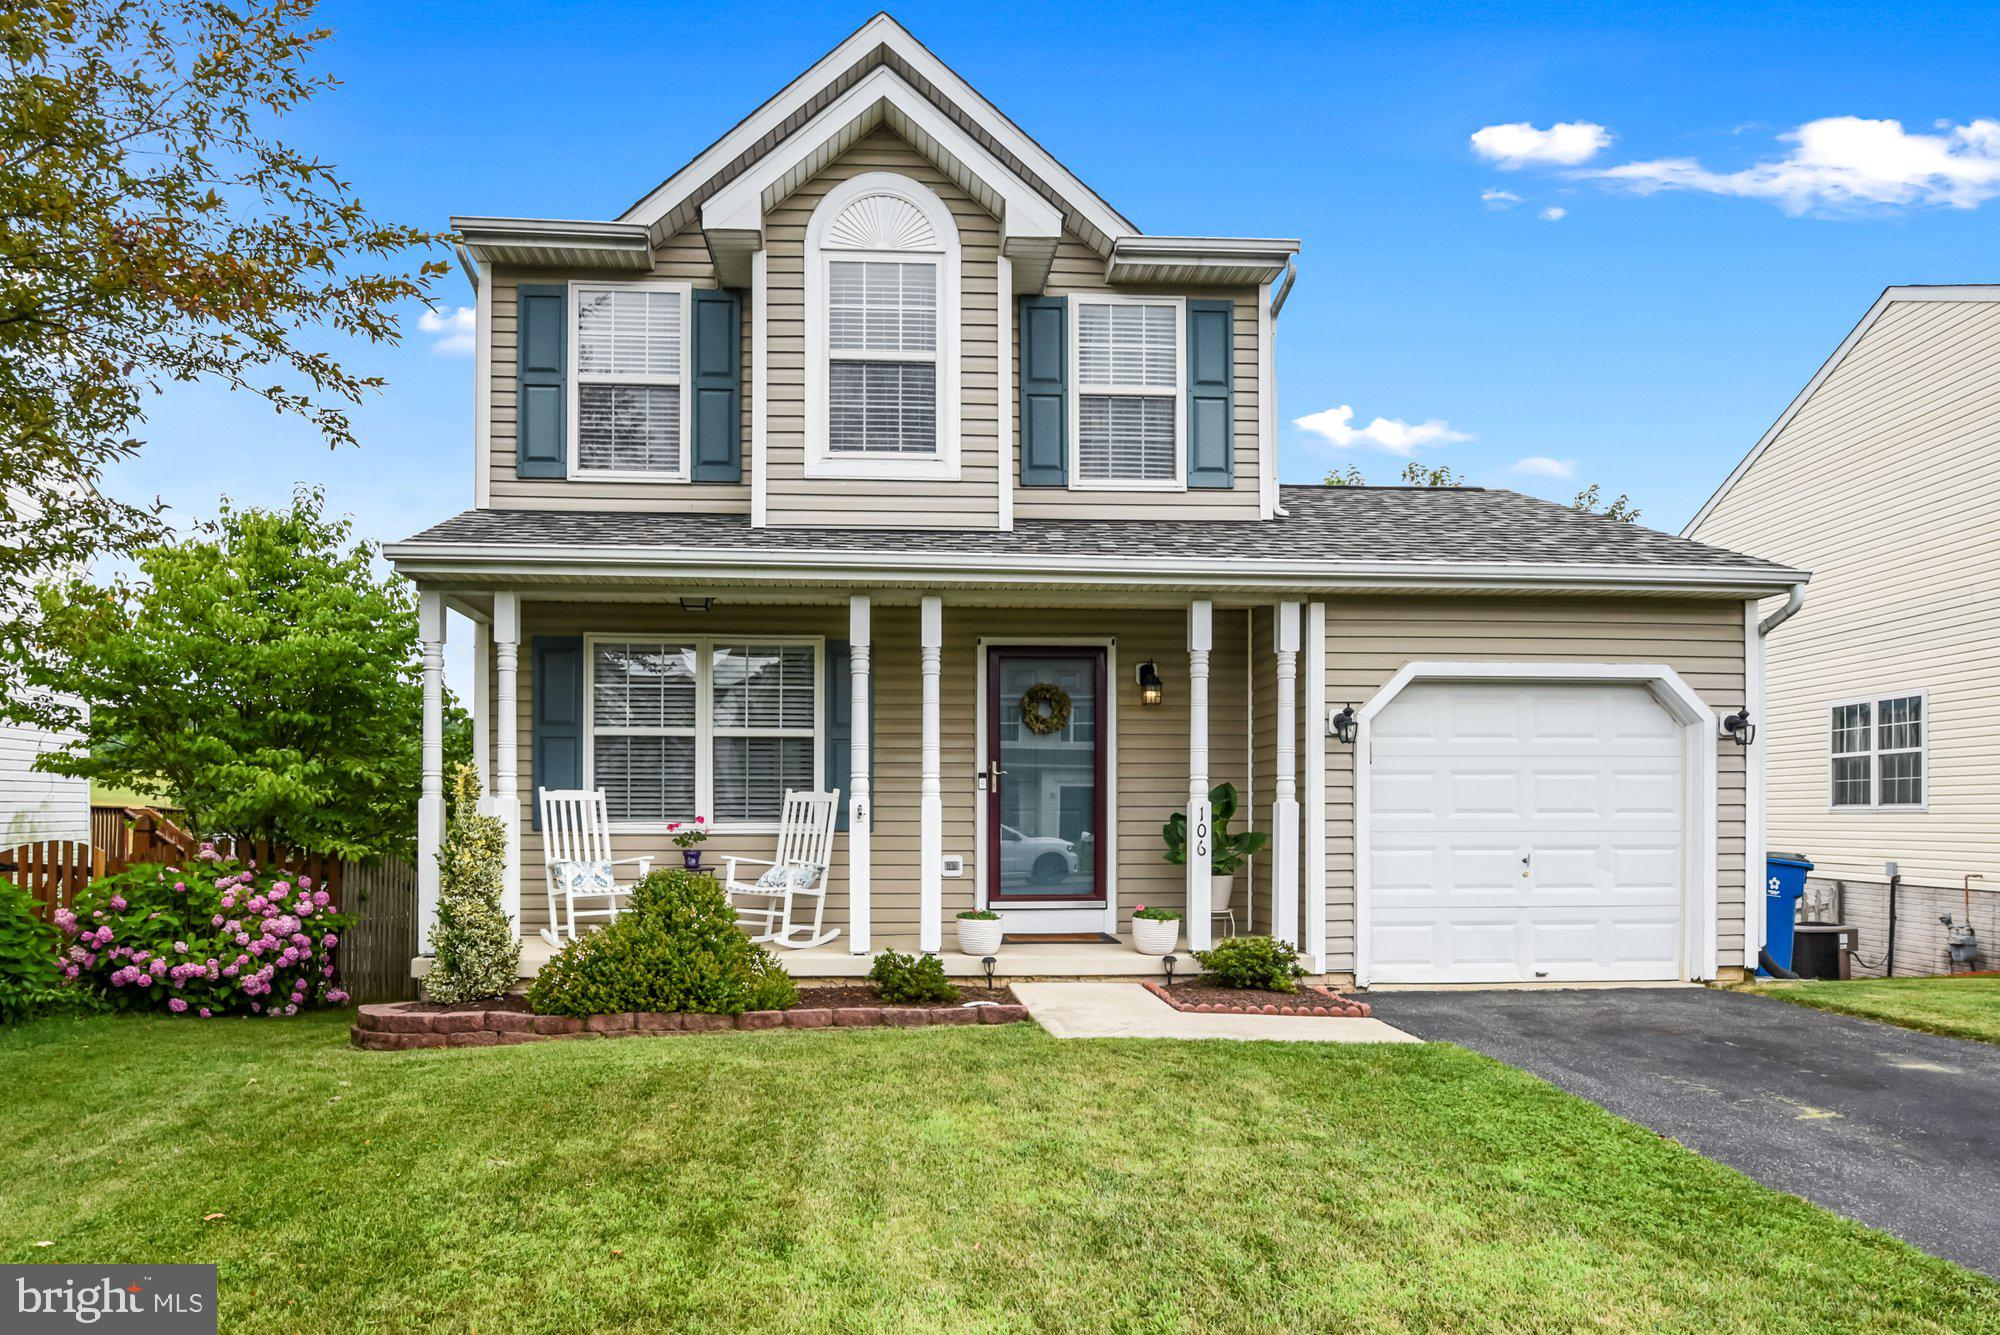 This beautiful 4 bed, 2.5 bath colonial home in Westminster has been meticulously maintained with ma